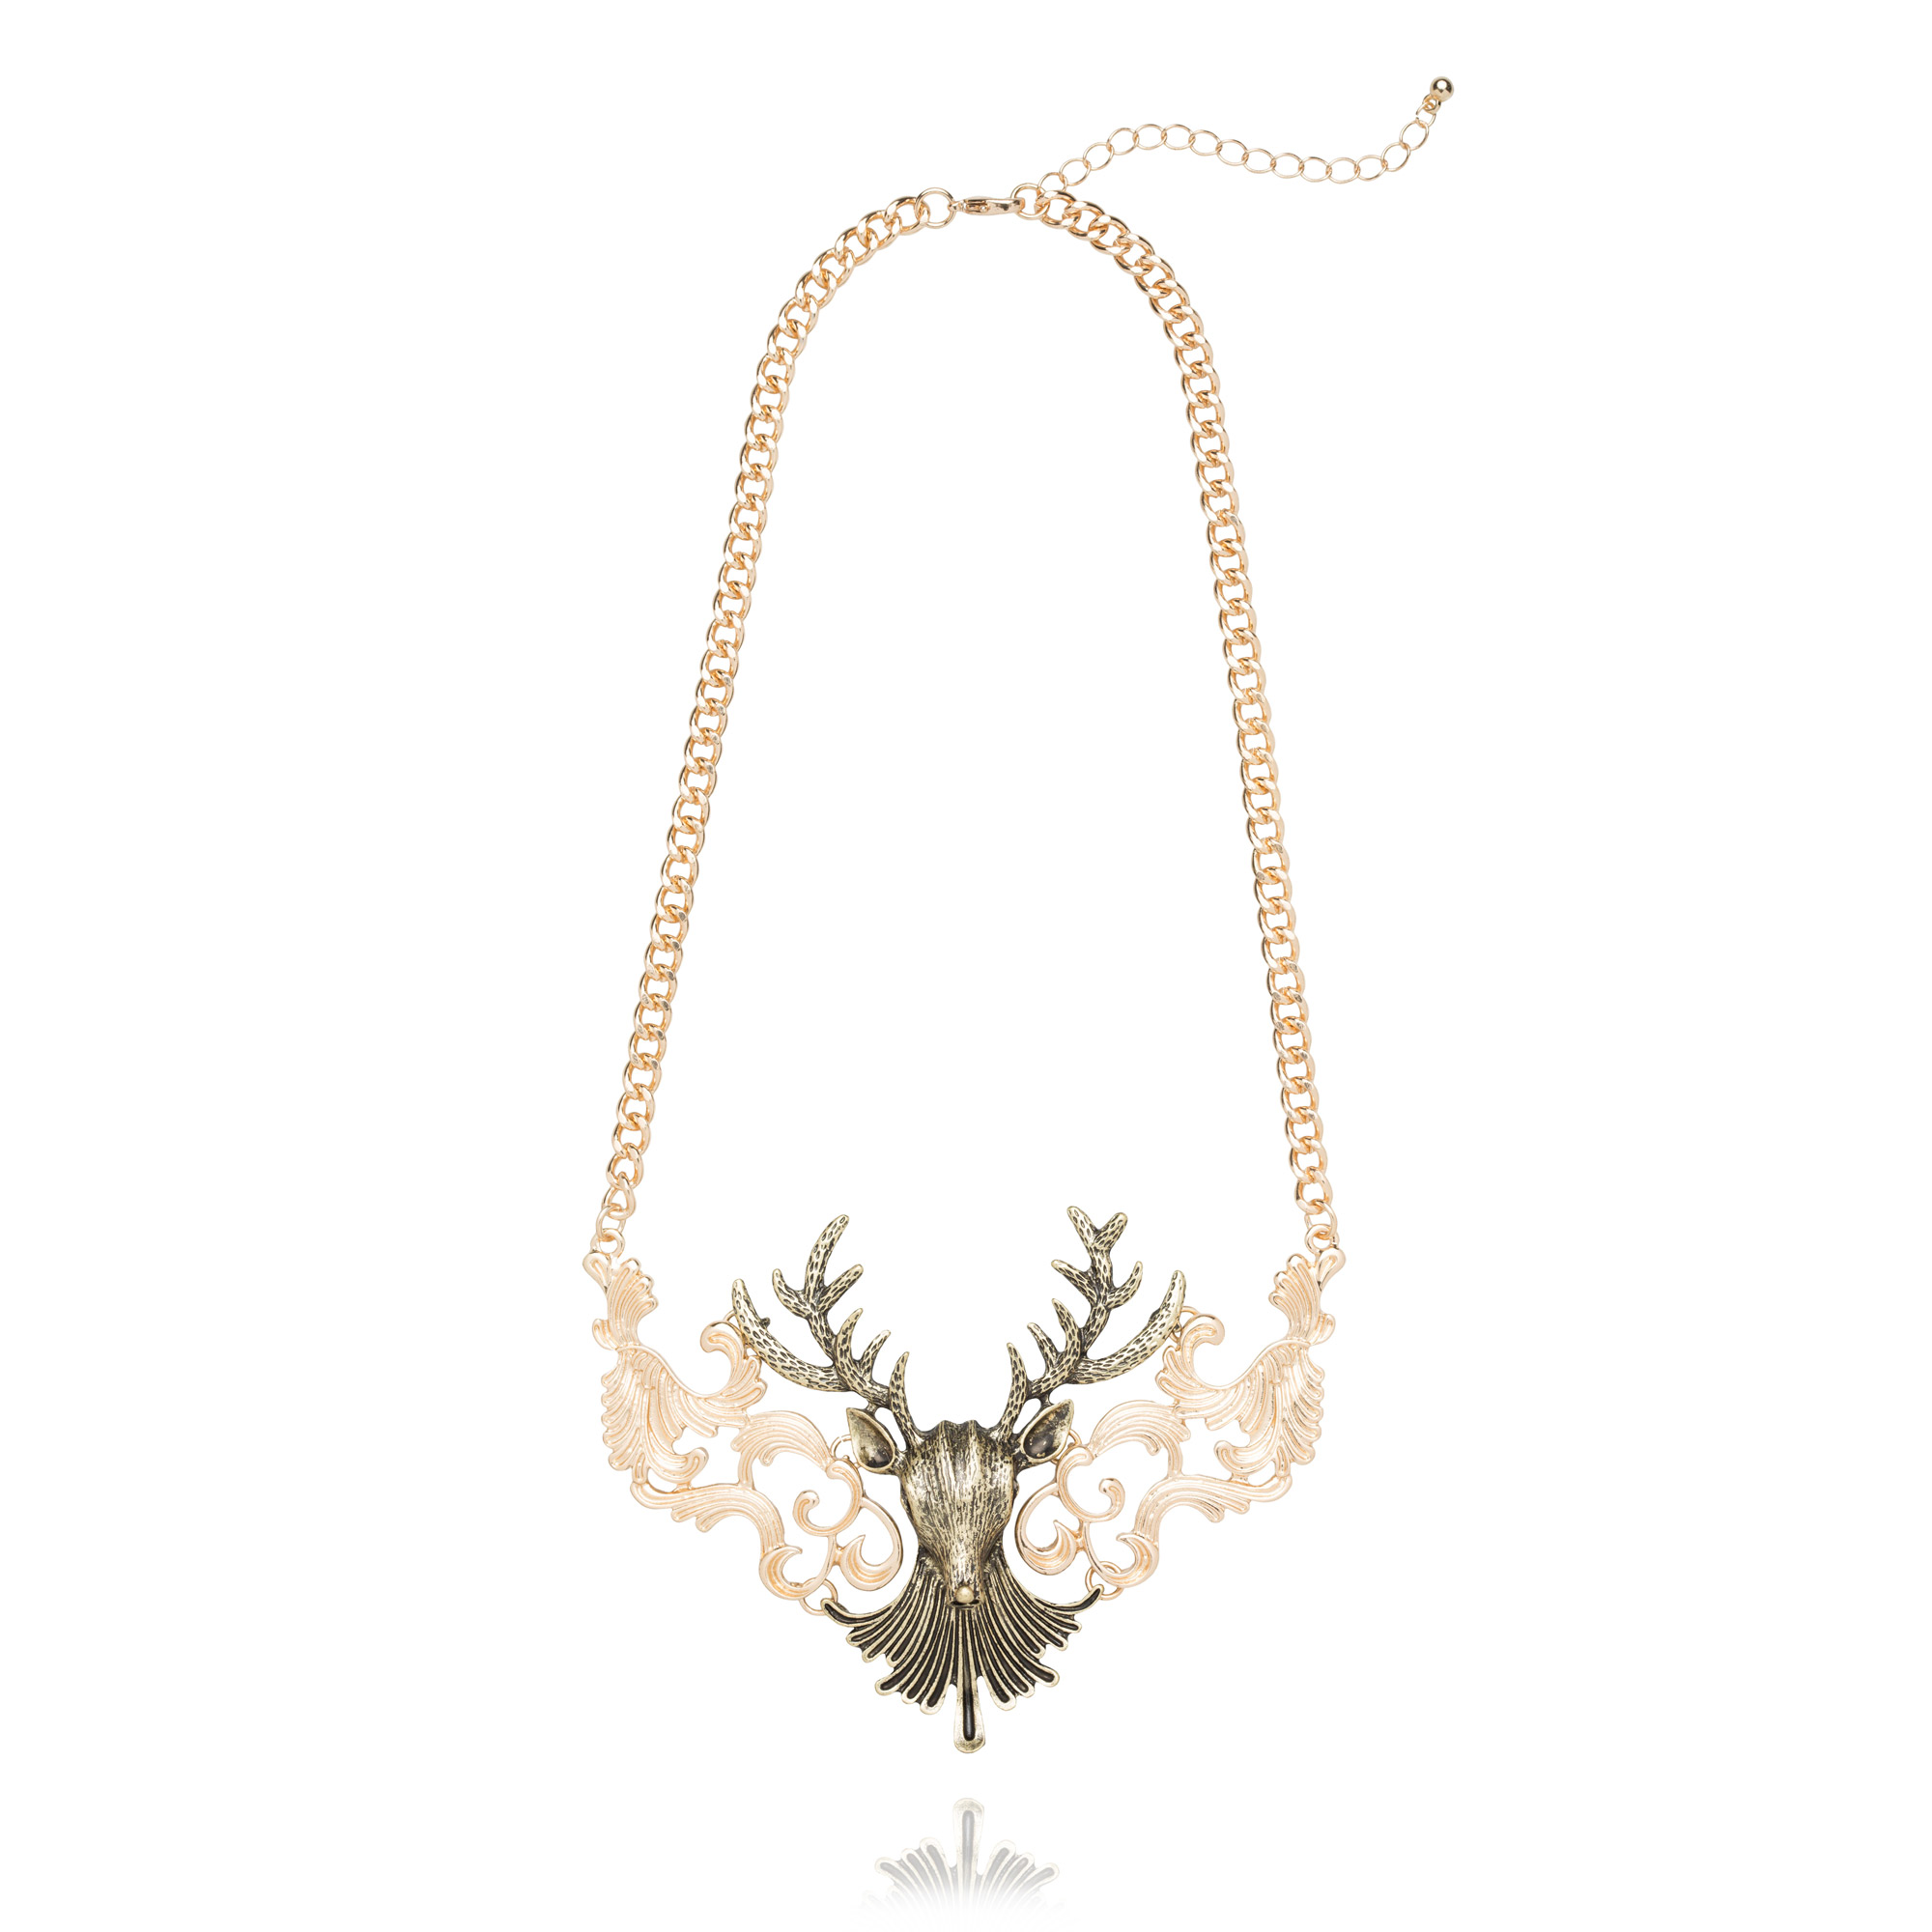 pendant classic gold hendrix necklace a wouters with products yg carat karat white diamond